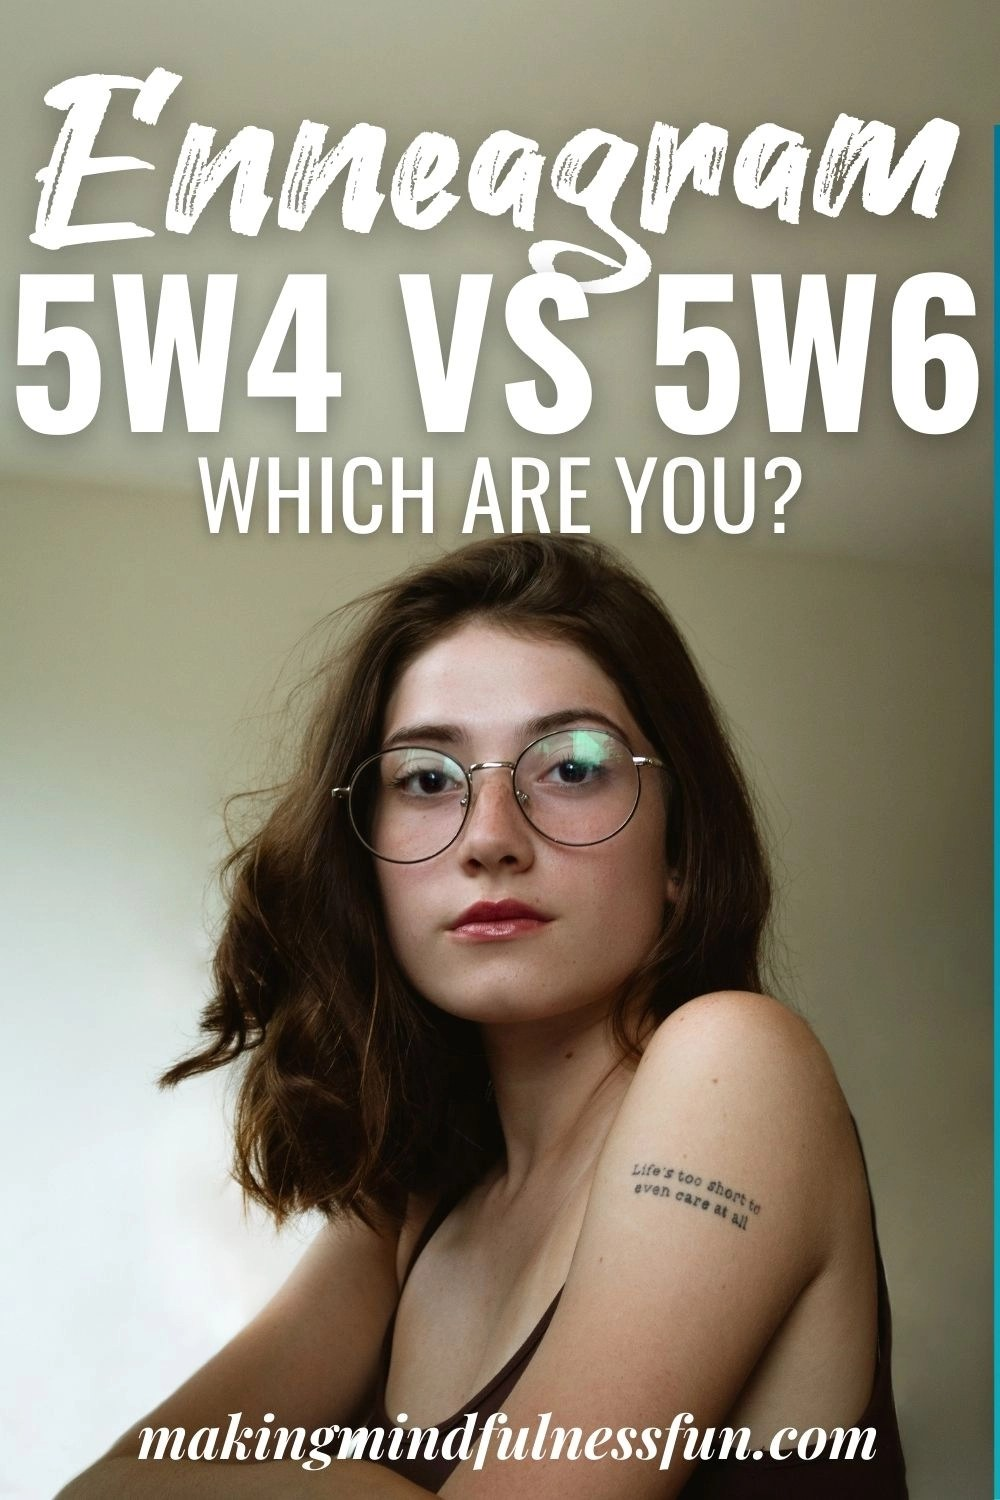 Enneagram 5w4 vs 5w6 Which Are You?